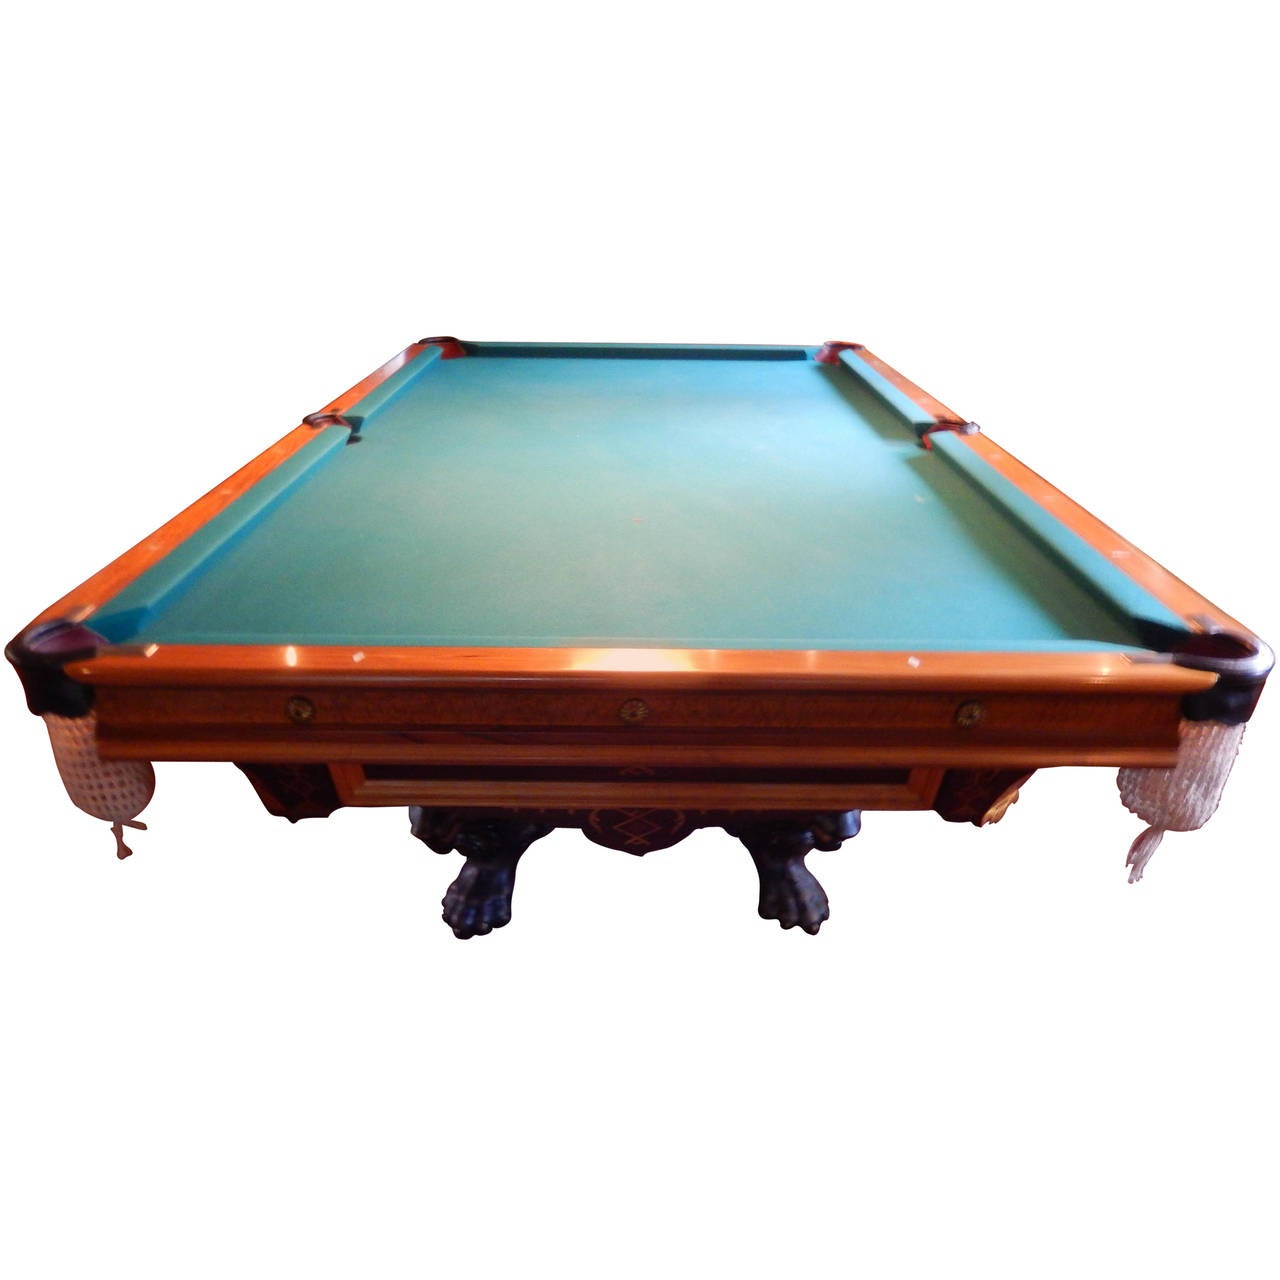 Brunswick balke monarch model billiard table at 1stdibs for Brunswick pool tables